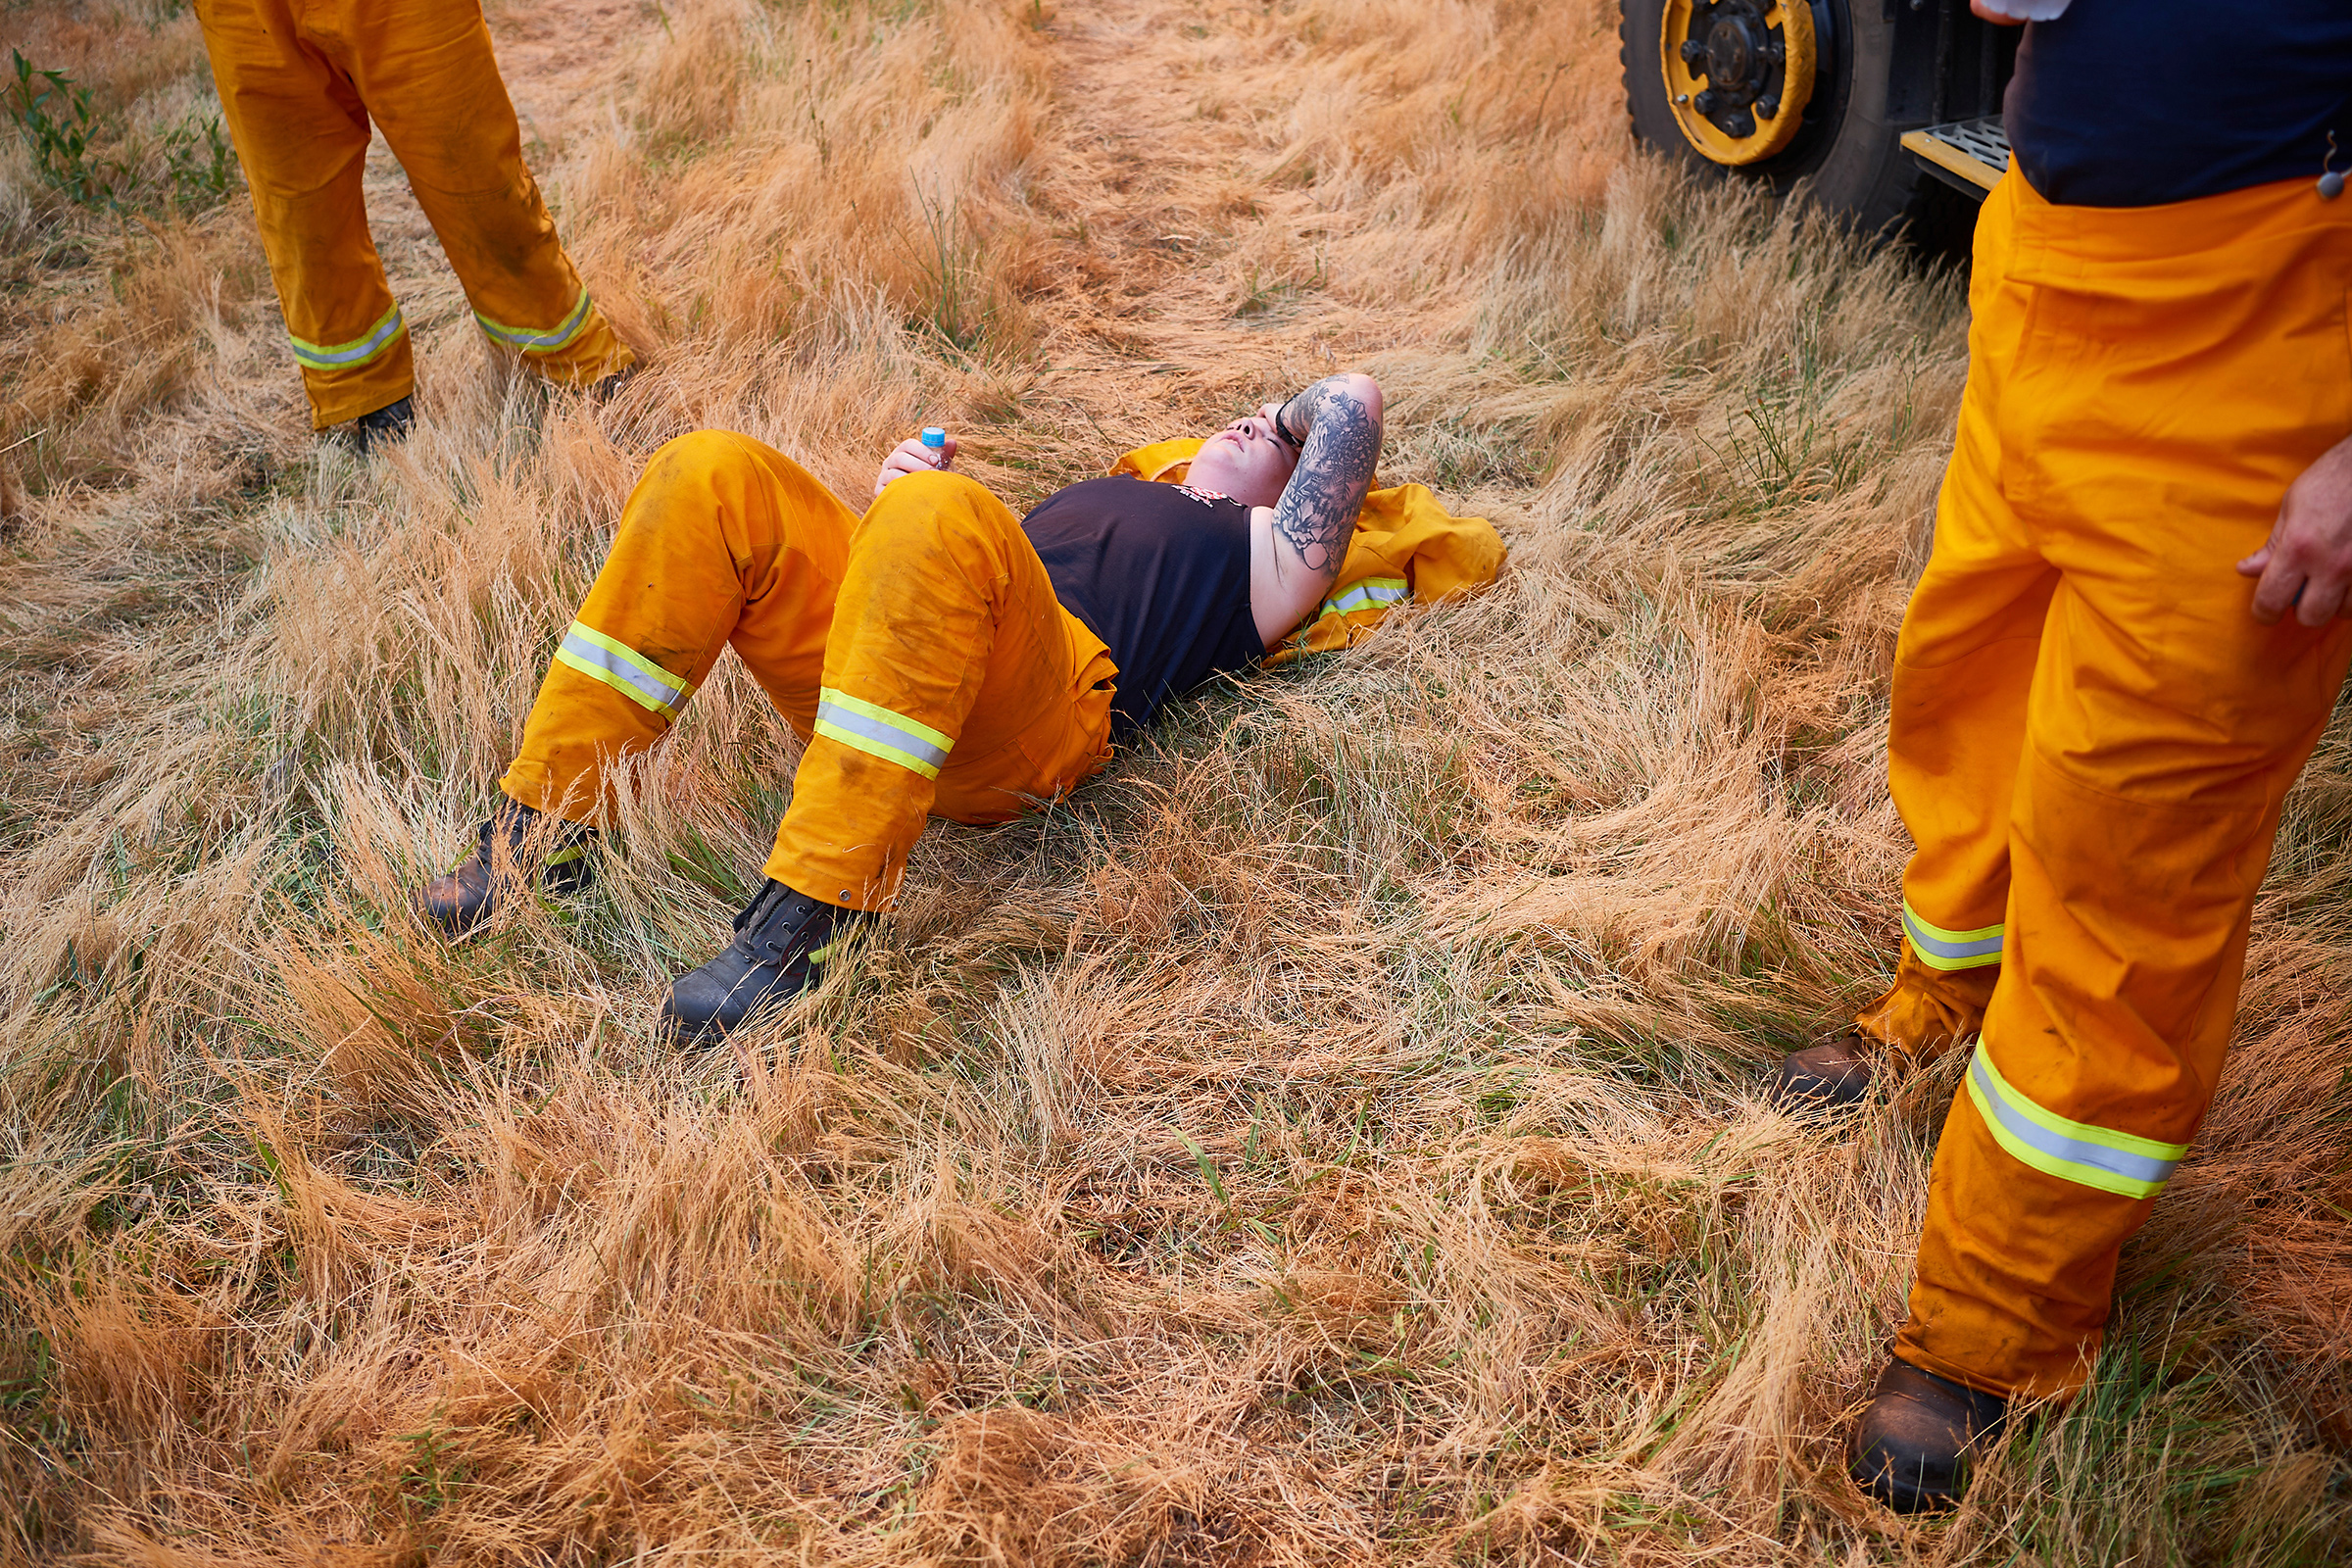 A Country Fire Authority crew member rests after a day of maintaining controlled back burns in St Albans on Nov. 21, 2019.